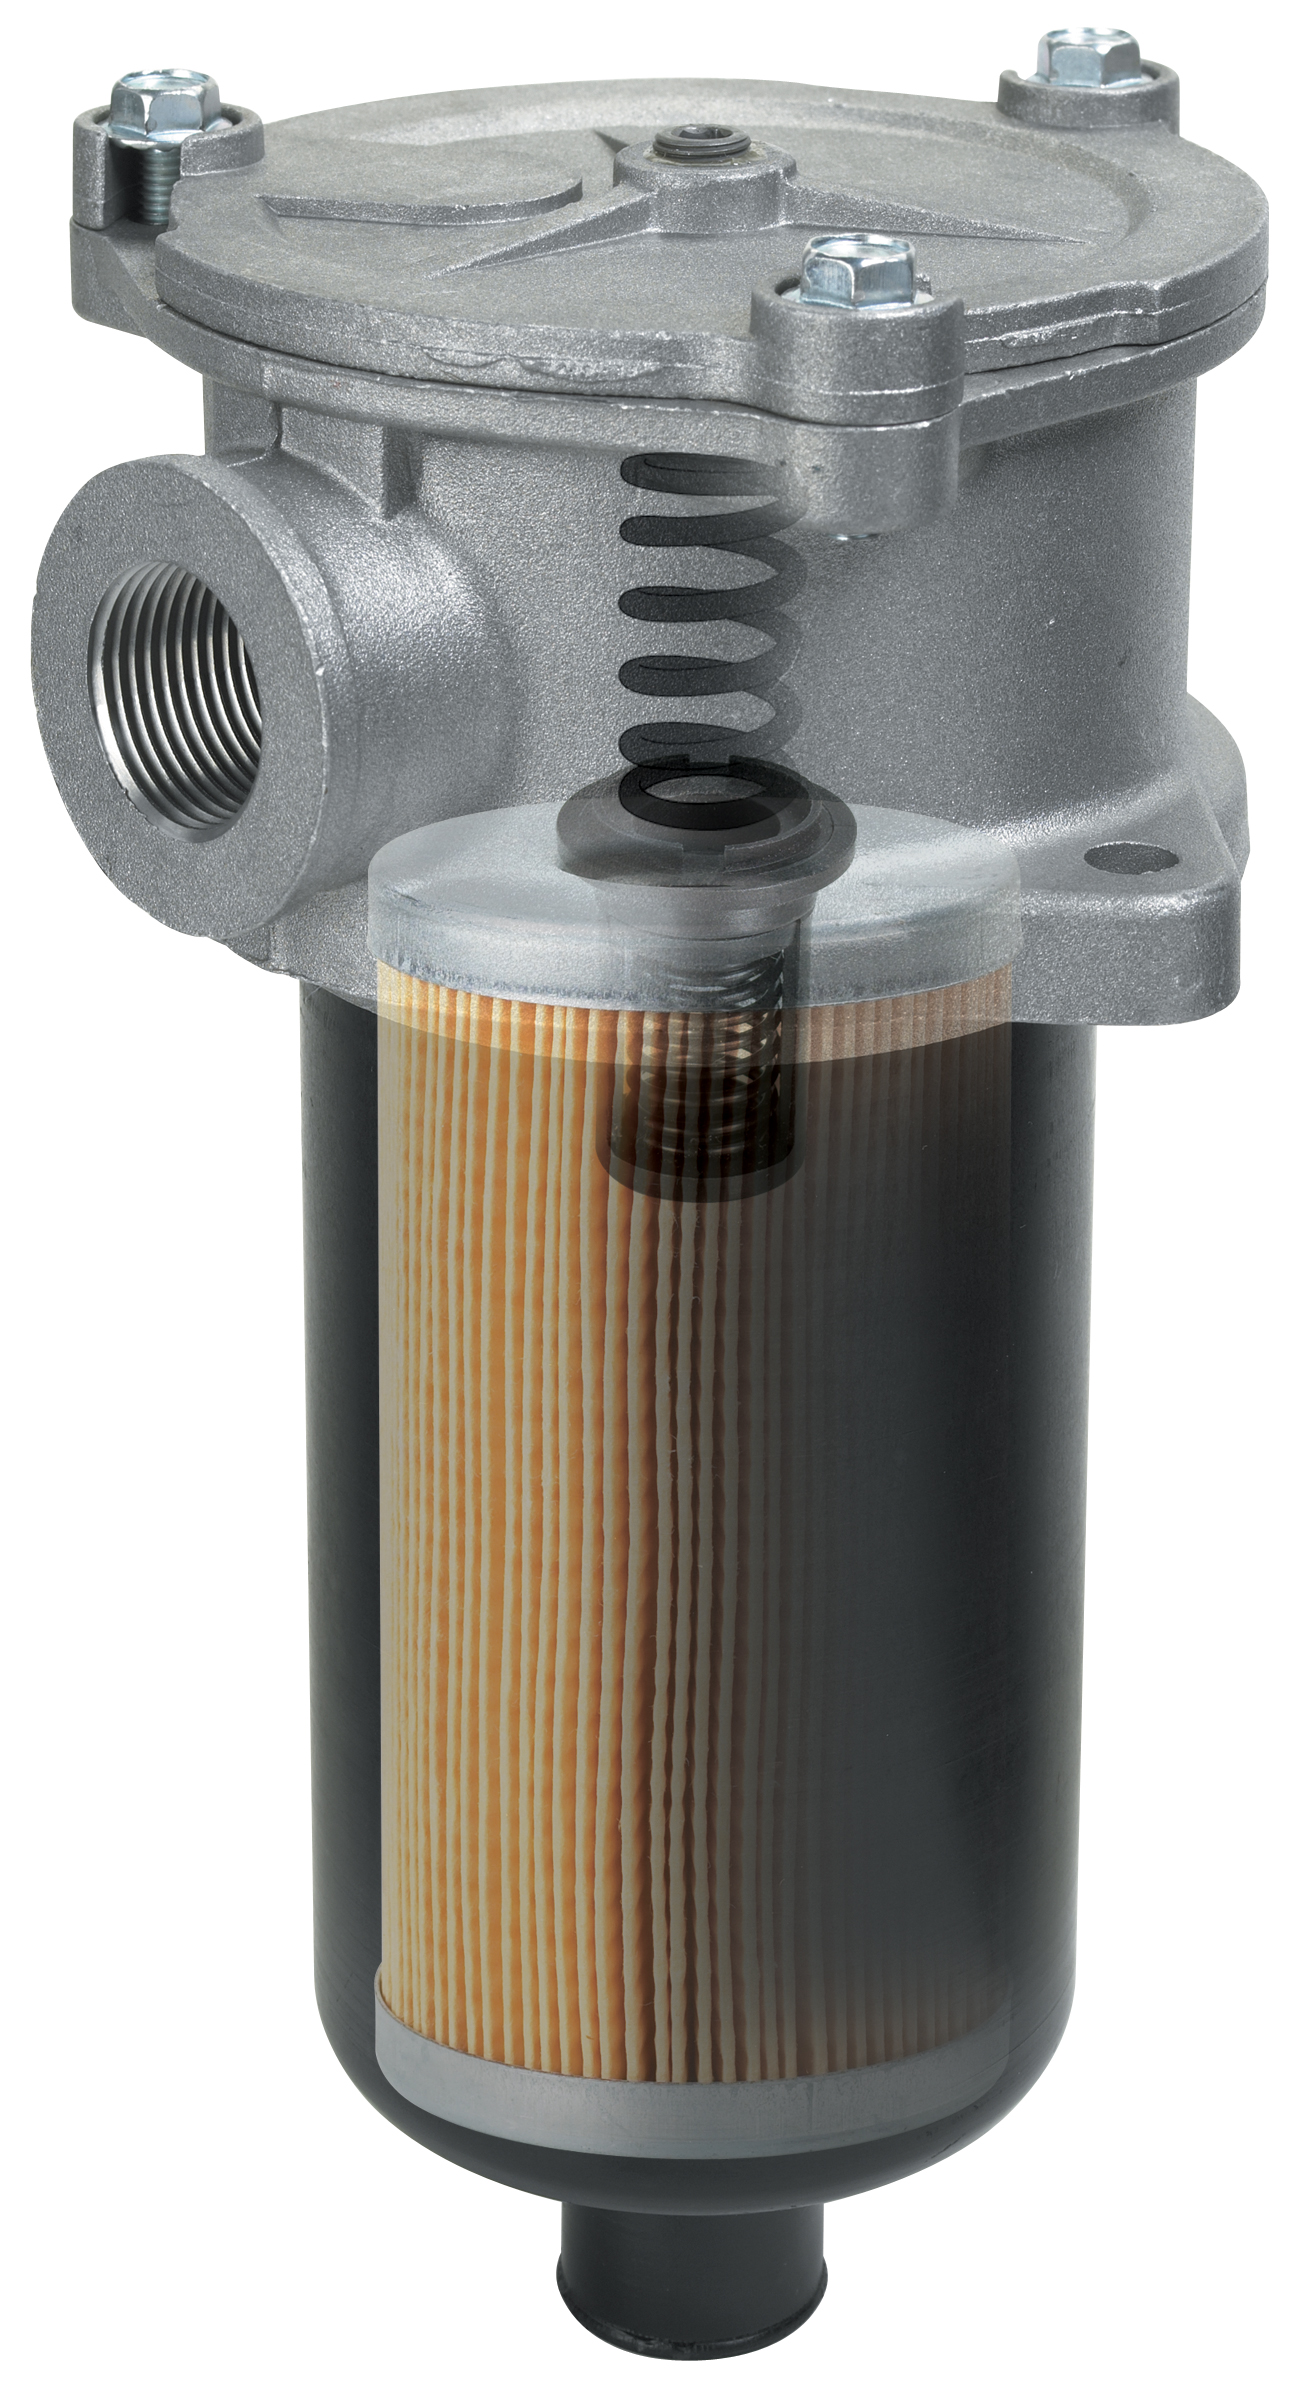 HYDRAULIC TANK IMMERSED FILTERS | Lenz